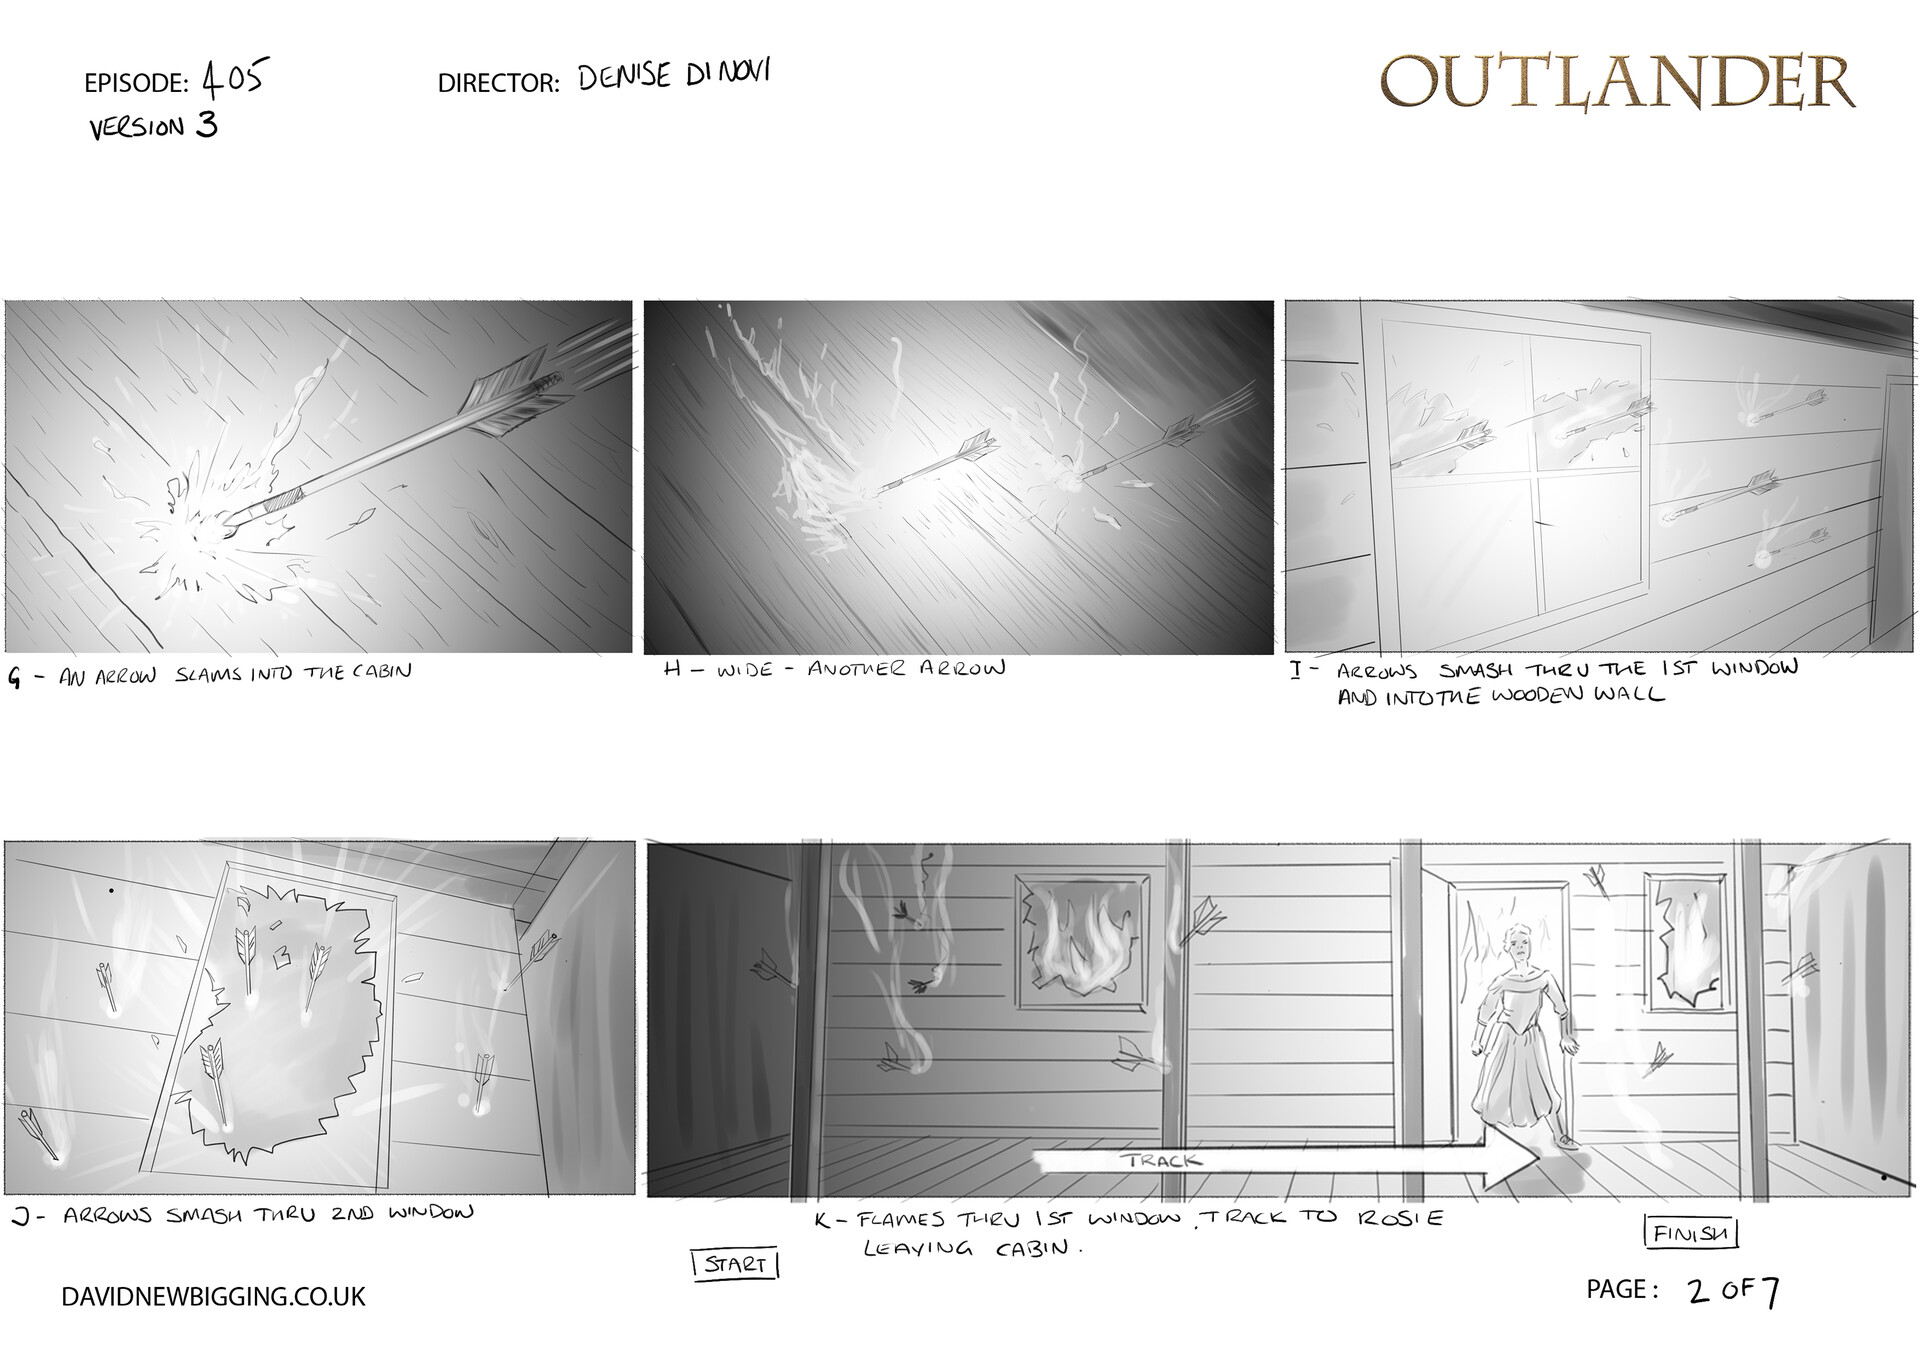 David newbigging outlander 405 cabin burning sequence storyboards version 3 2